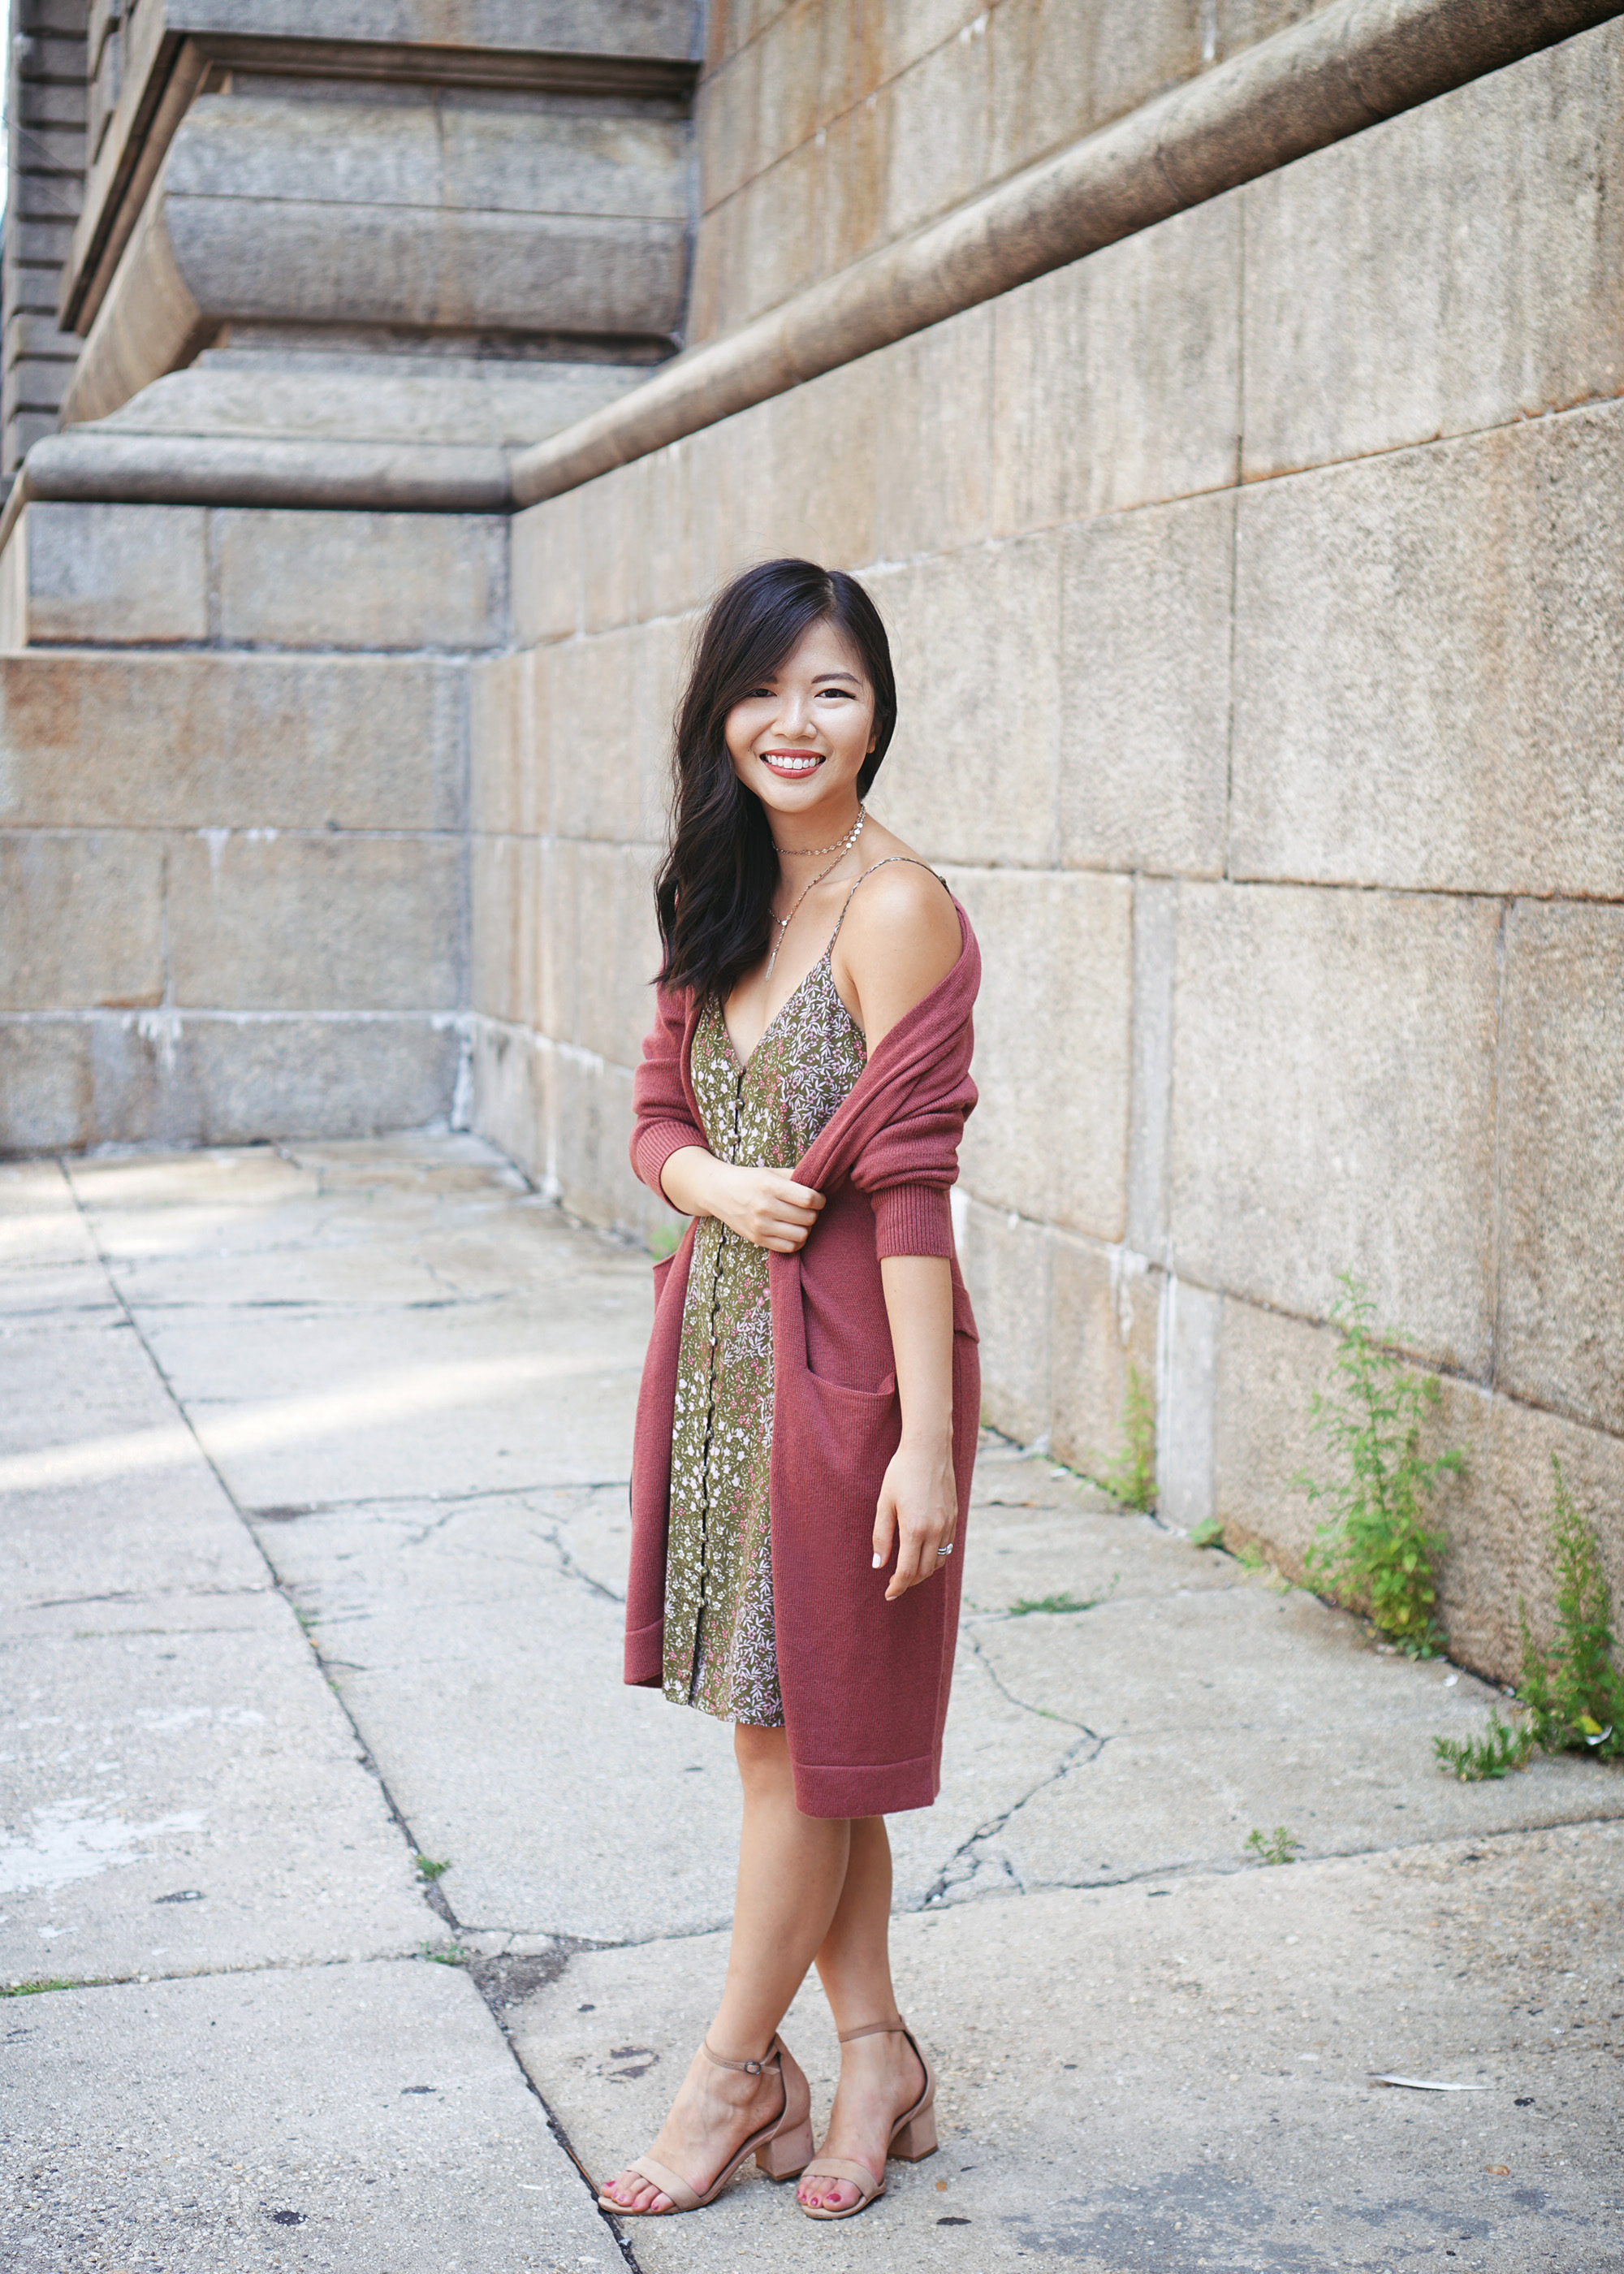 Fall Outfit Inspiration: Long Cardigan & Floral Slip Dress